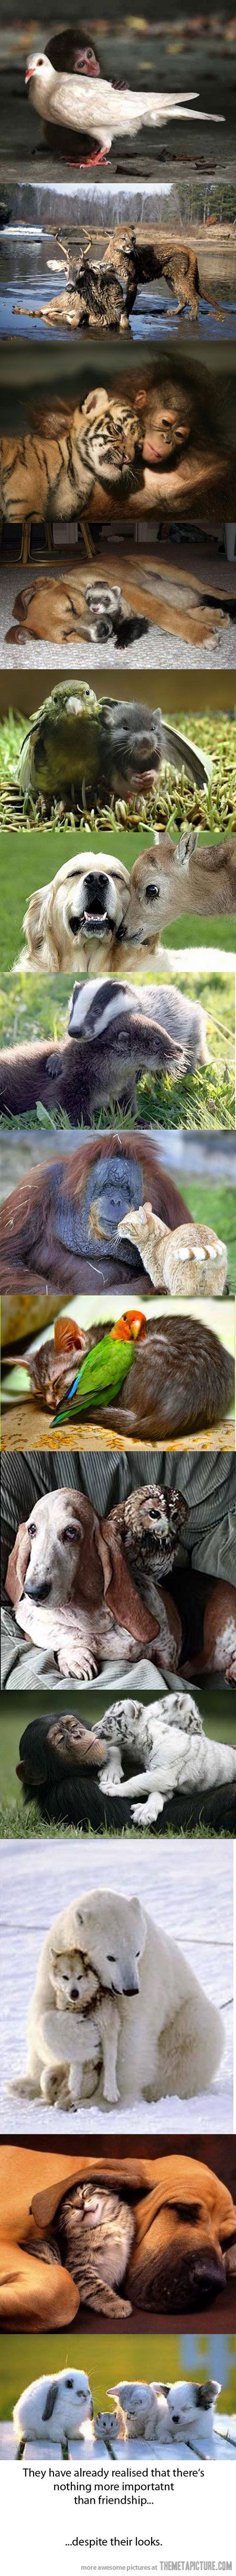 aww: True Friendship, Animal Friendship, Animals, Best Friends, Polar Bears, Sweet, Unlikely Friendship, Unlikely Animal Friends, Odd Couples